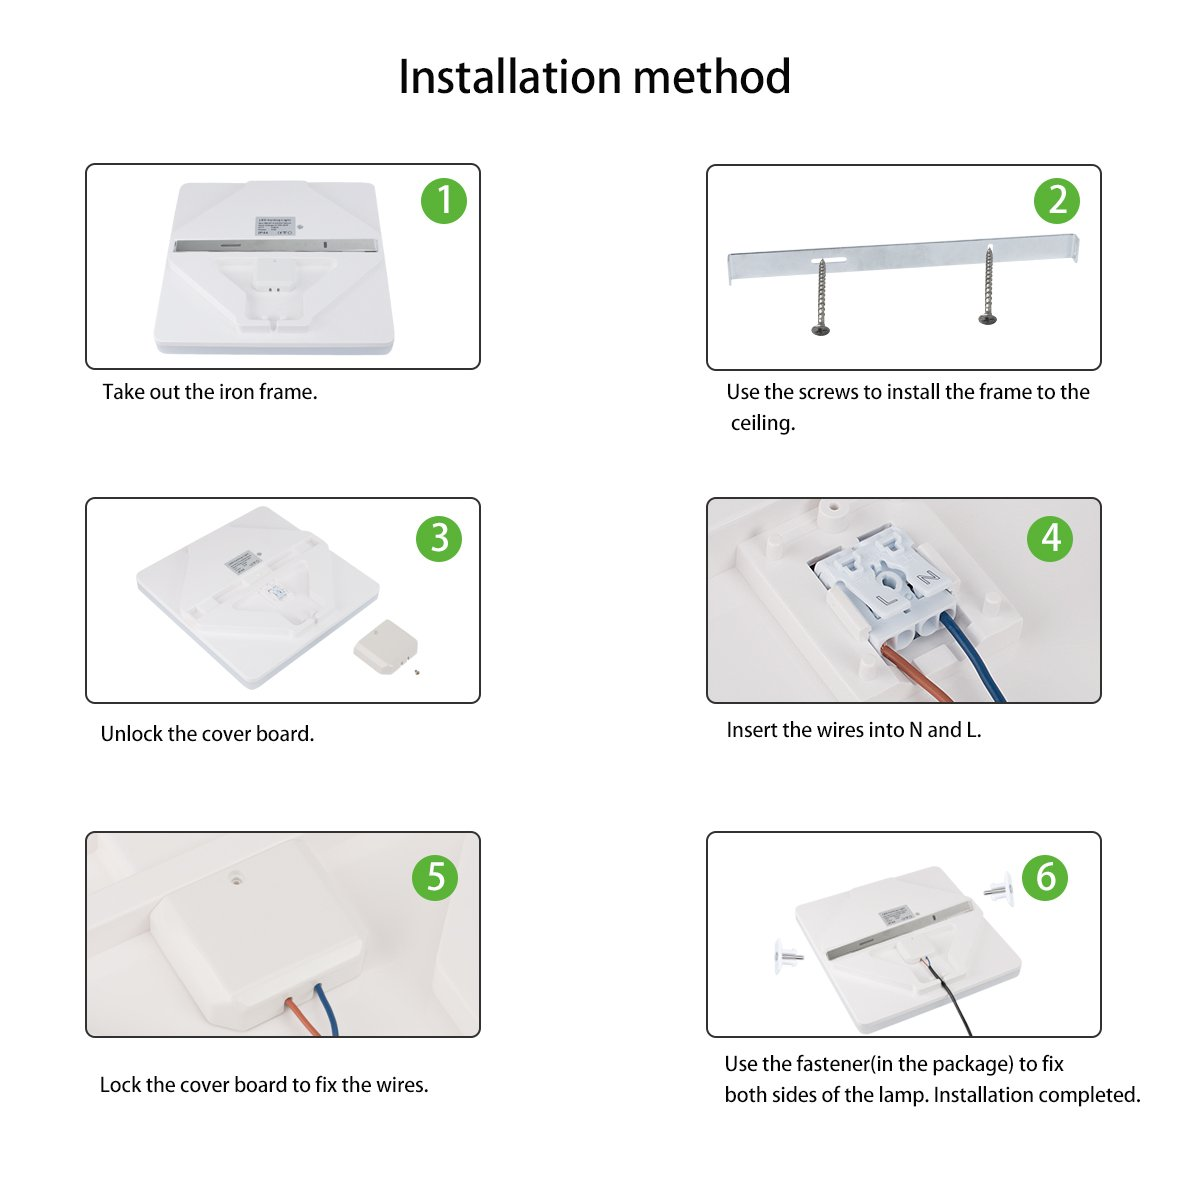 Led Ceiling Lights Flush Mount Square 5000k Daylight Cold White Basement Bathroom Wiring Diagram Before Installing The Vanity Light Airand 24w Waterproof Ip44 2050 Lumens 126in Lamps For Kitchen Bedroom